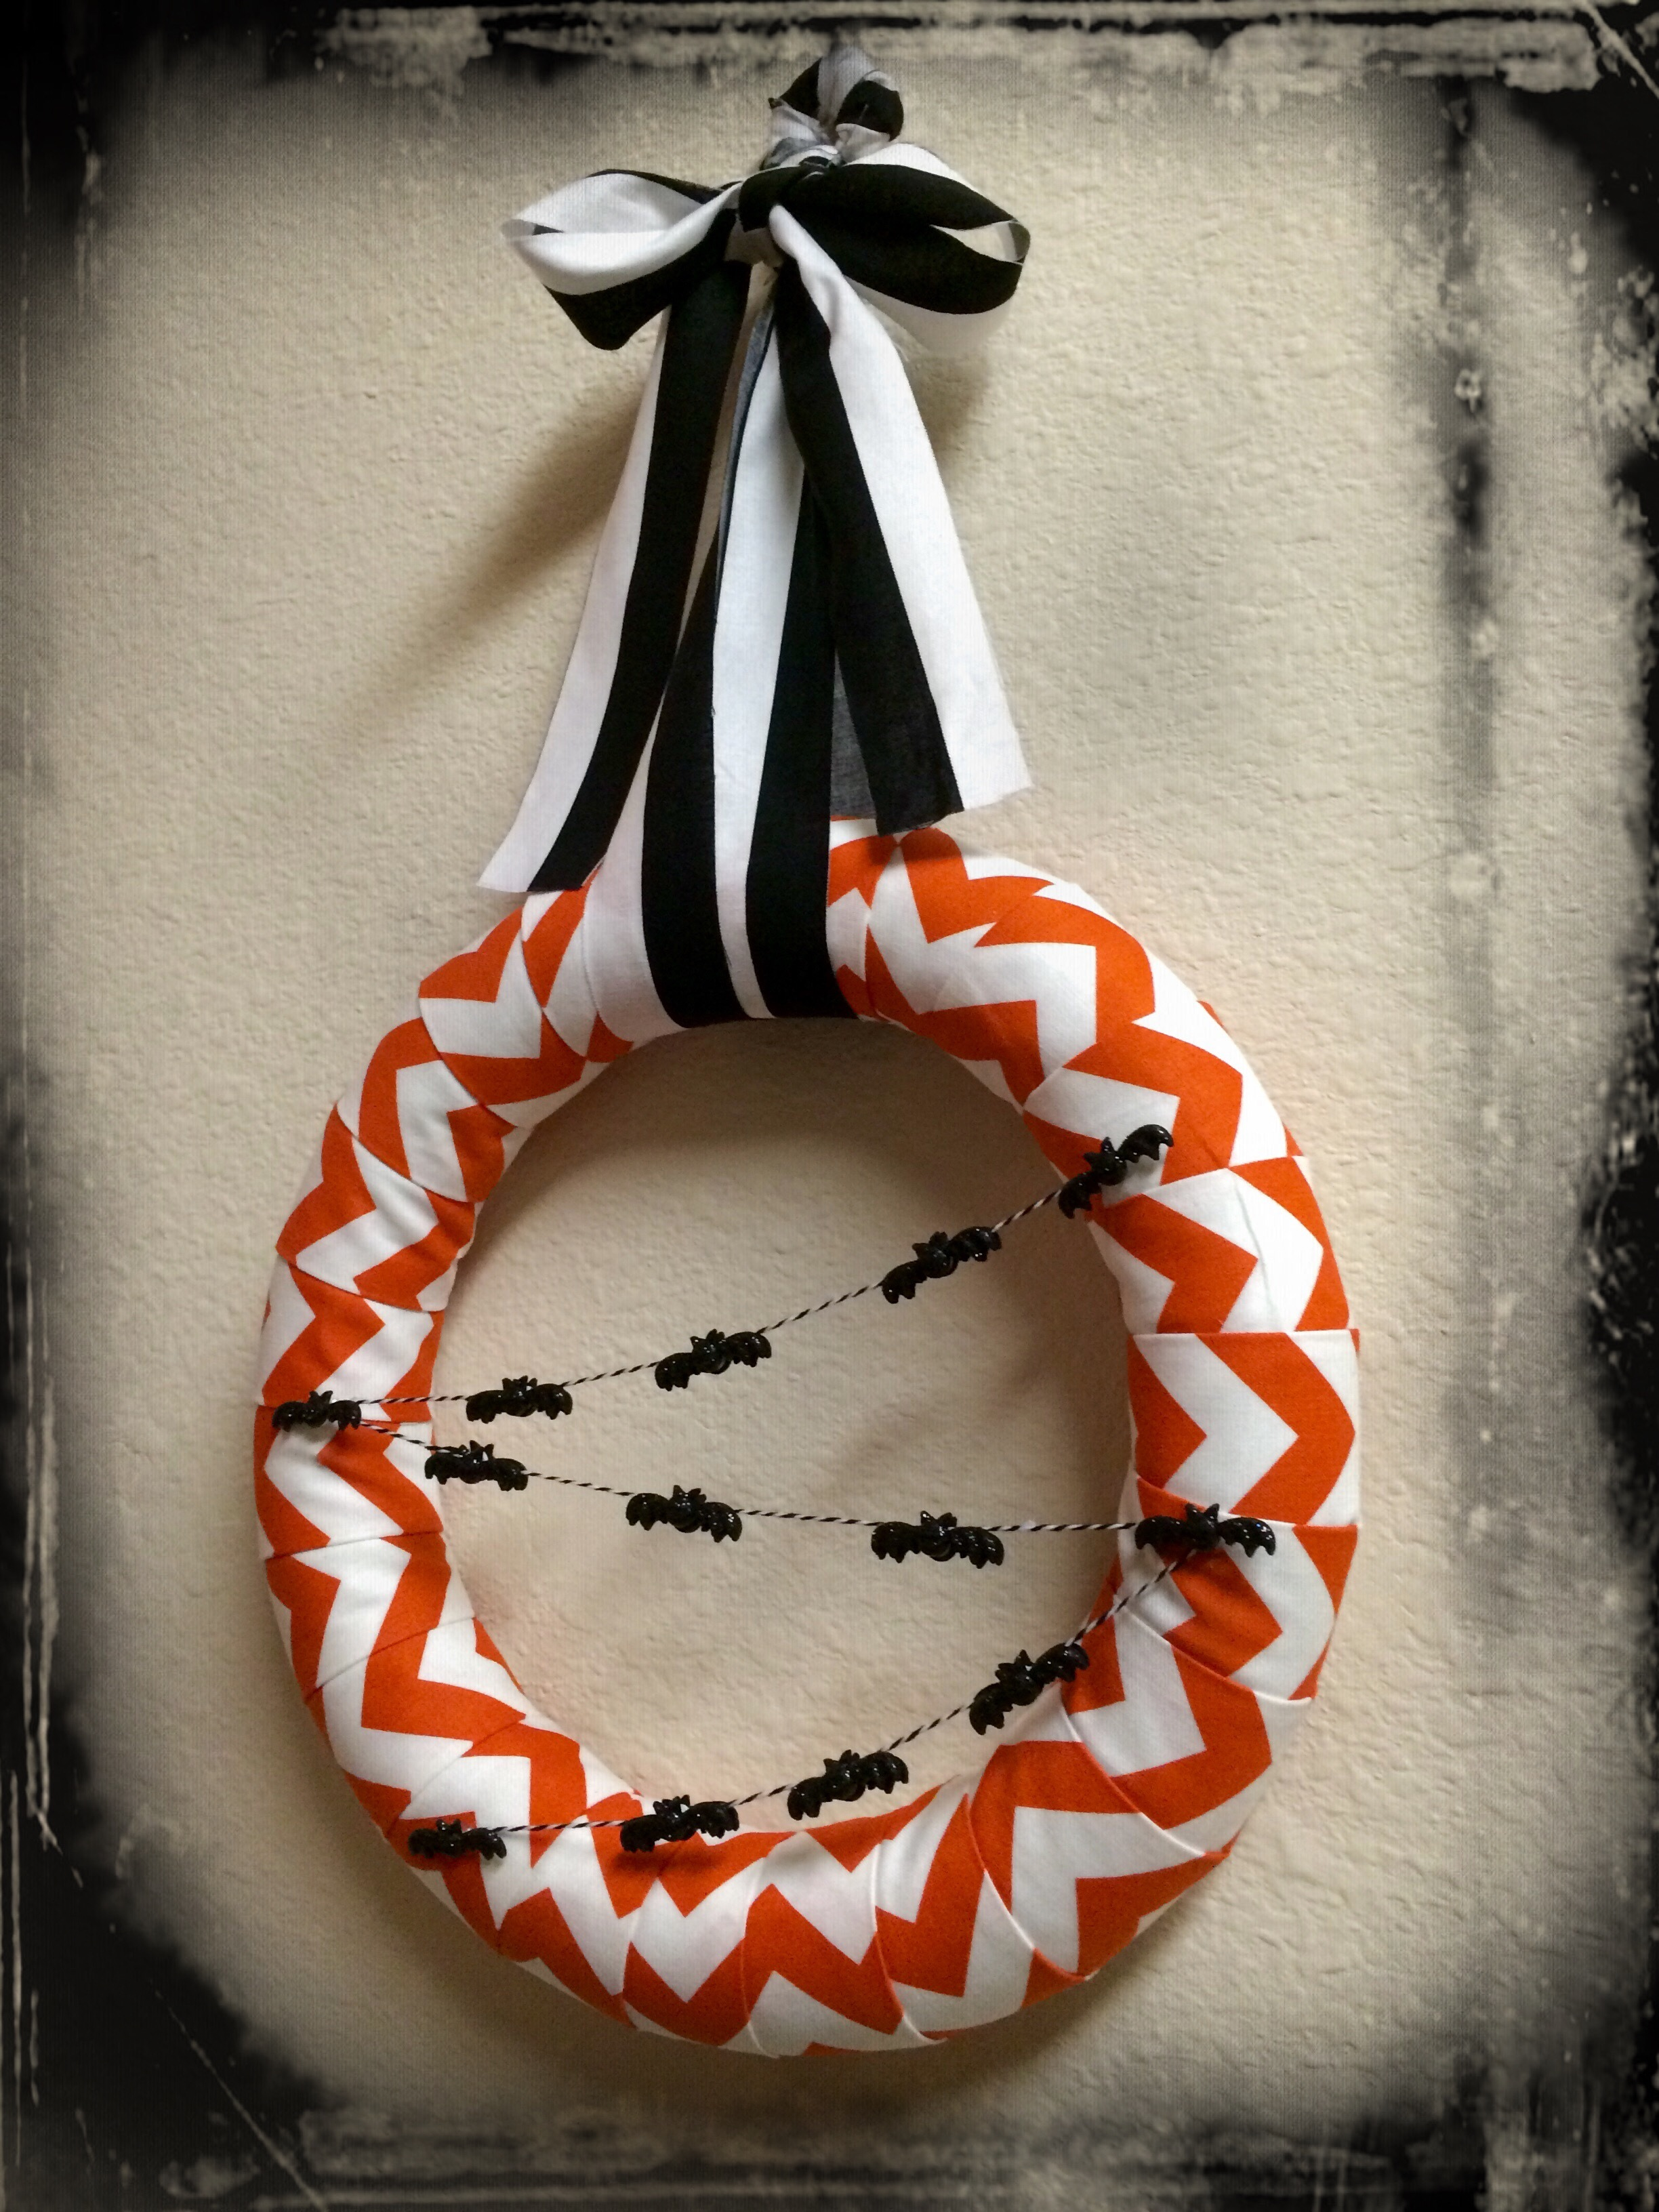 My Glittery Halloween Chevron Wreath | My Life Space Moments}